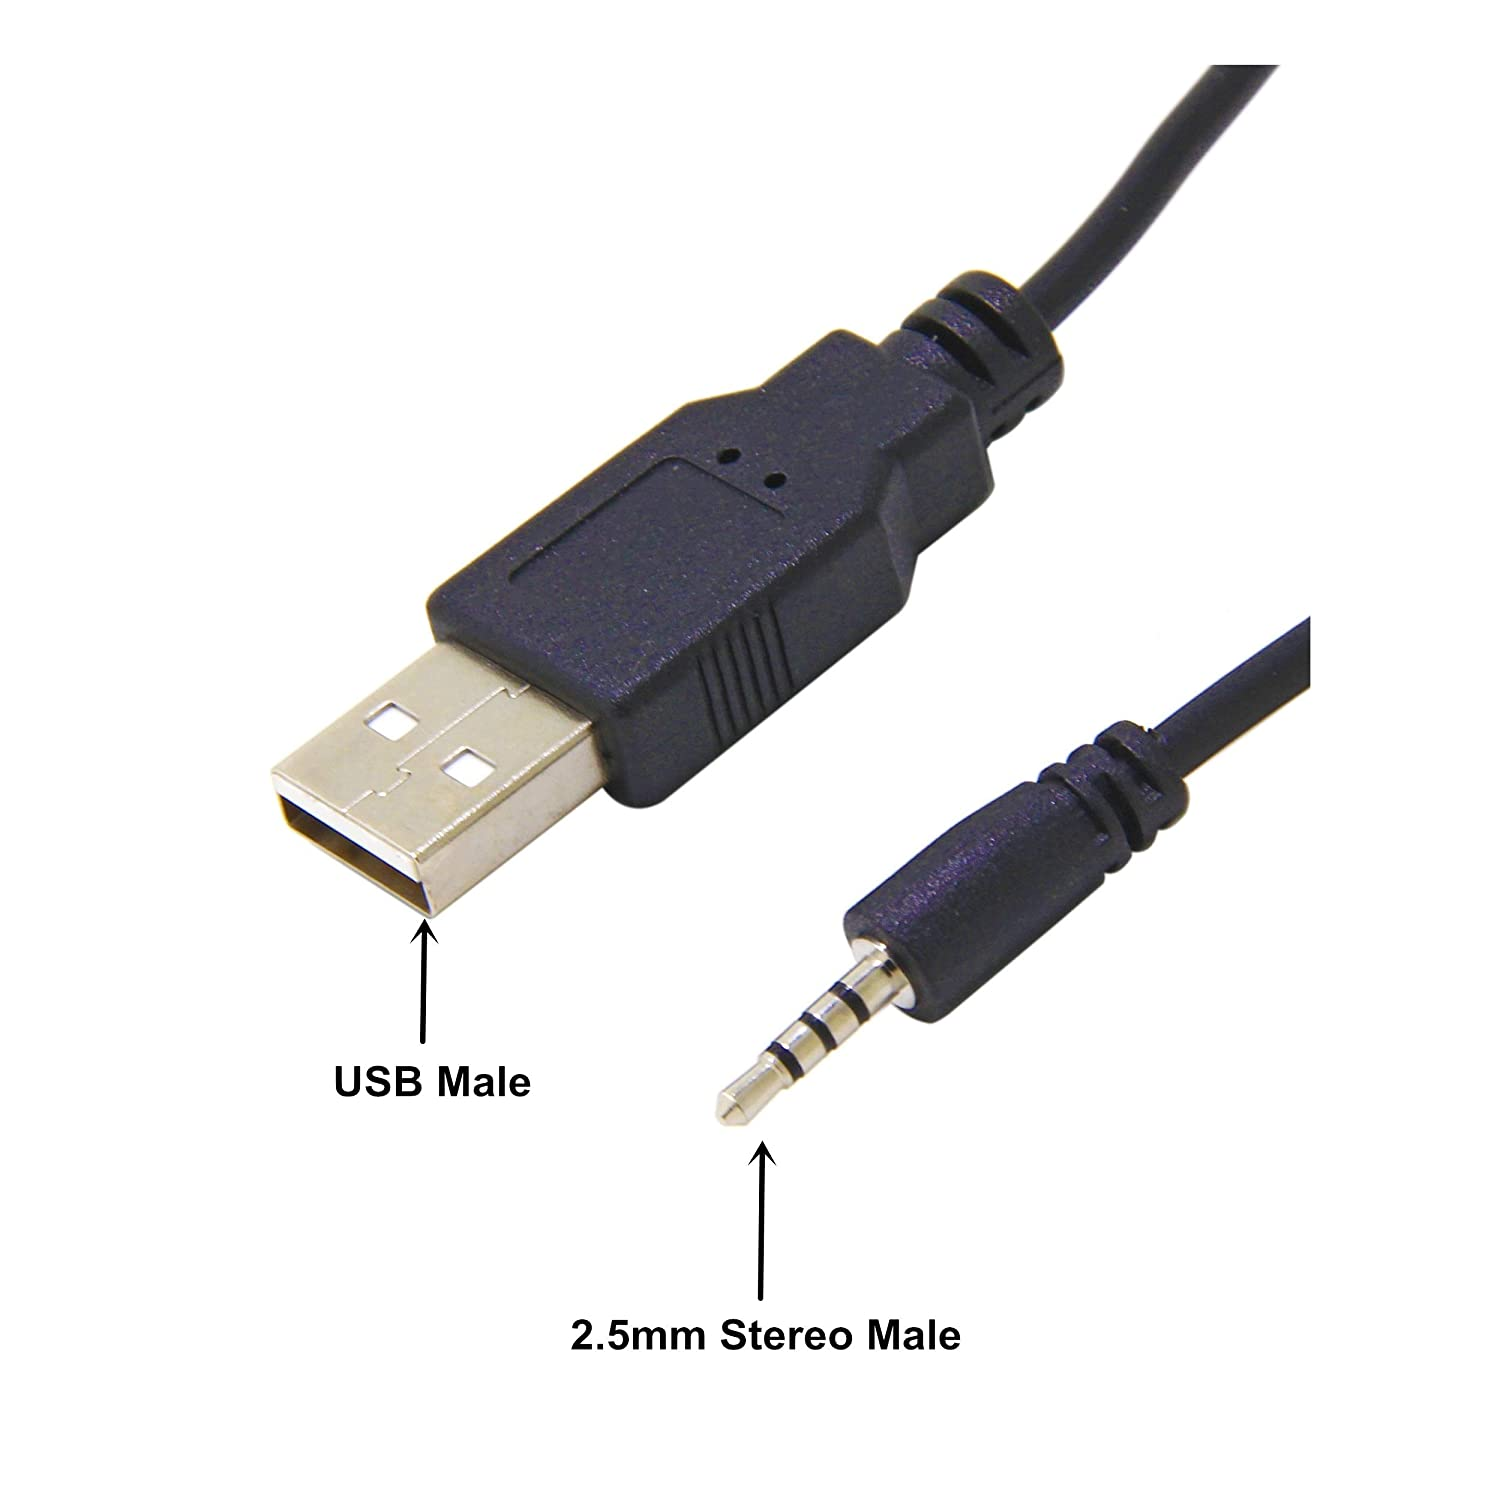 USB to 2.5mm Male, Ancable Headphone Charger Cable for JBL Synchros E30 E40BT E45BT E50BT EB40 S400BT S400 S500 S700 J56BT Wireless Headphones ...